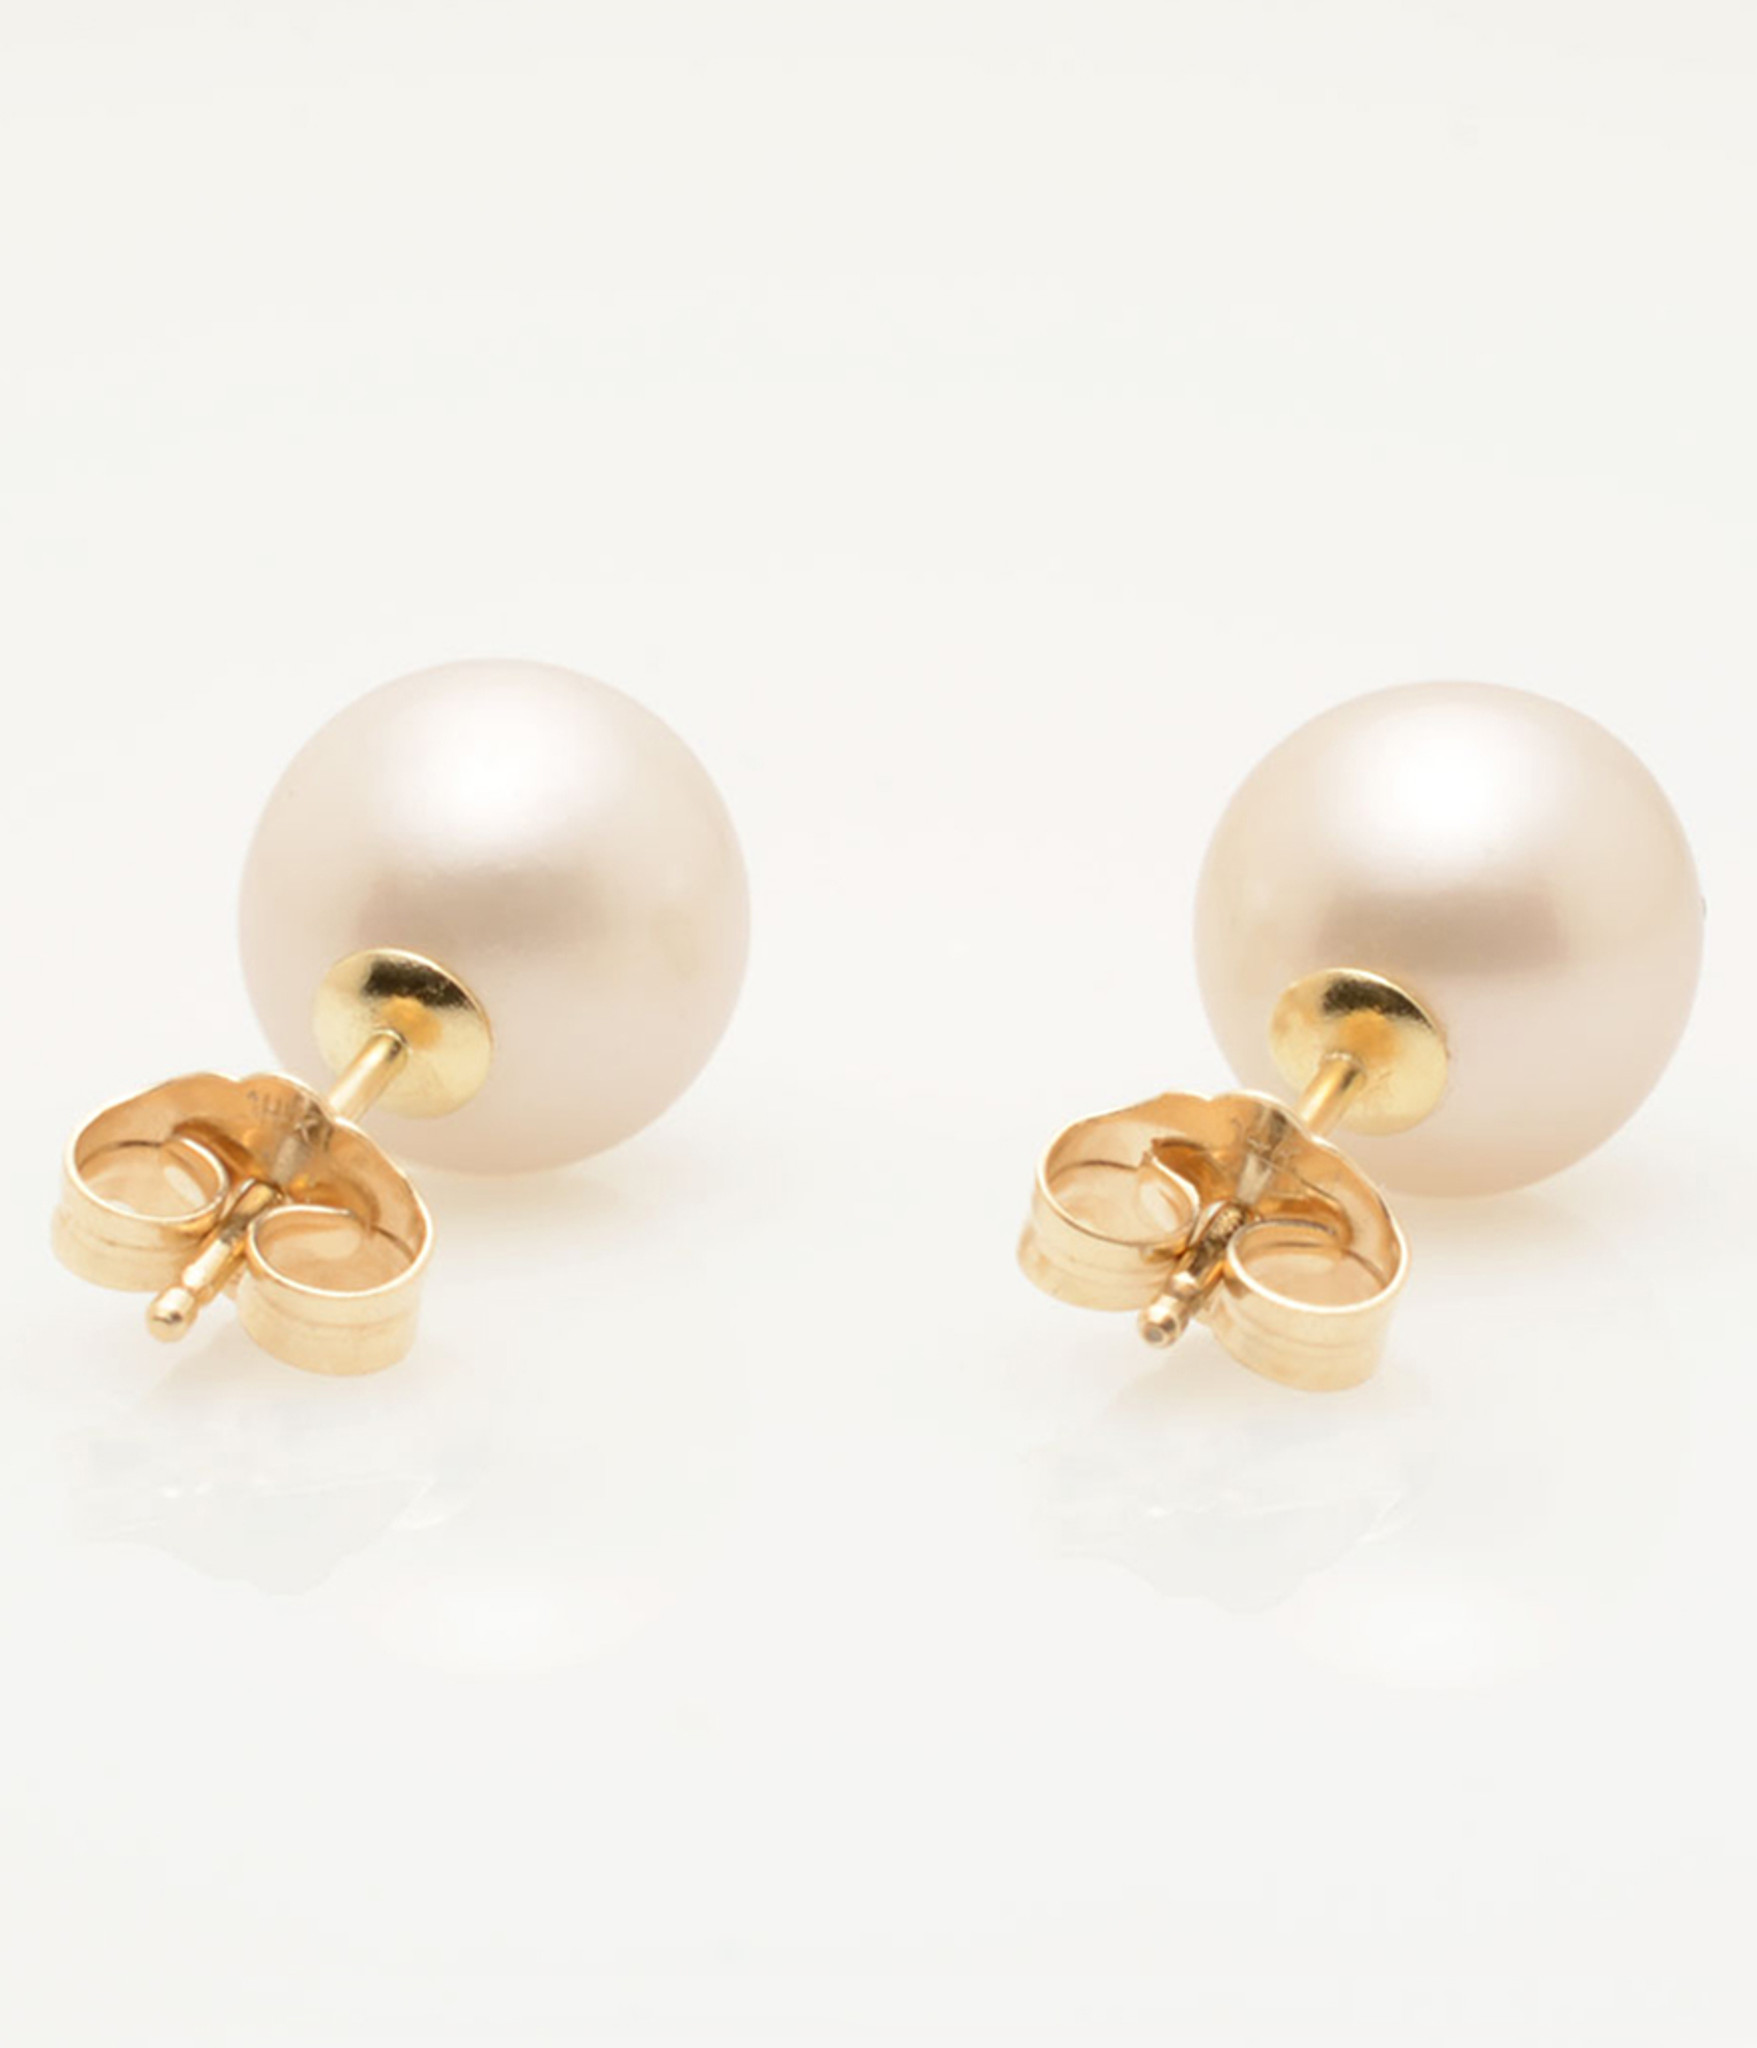 Back View of Cultured Freshwater Pearl Earrings with 14k Gold Posts by Nektar De Stagni (8-9 mm)